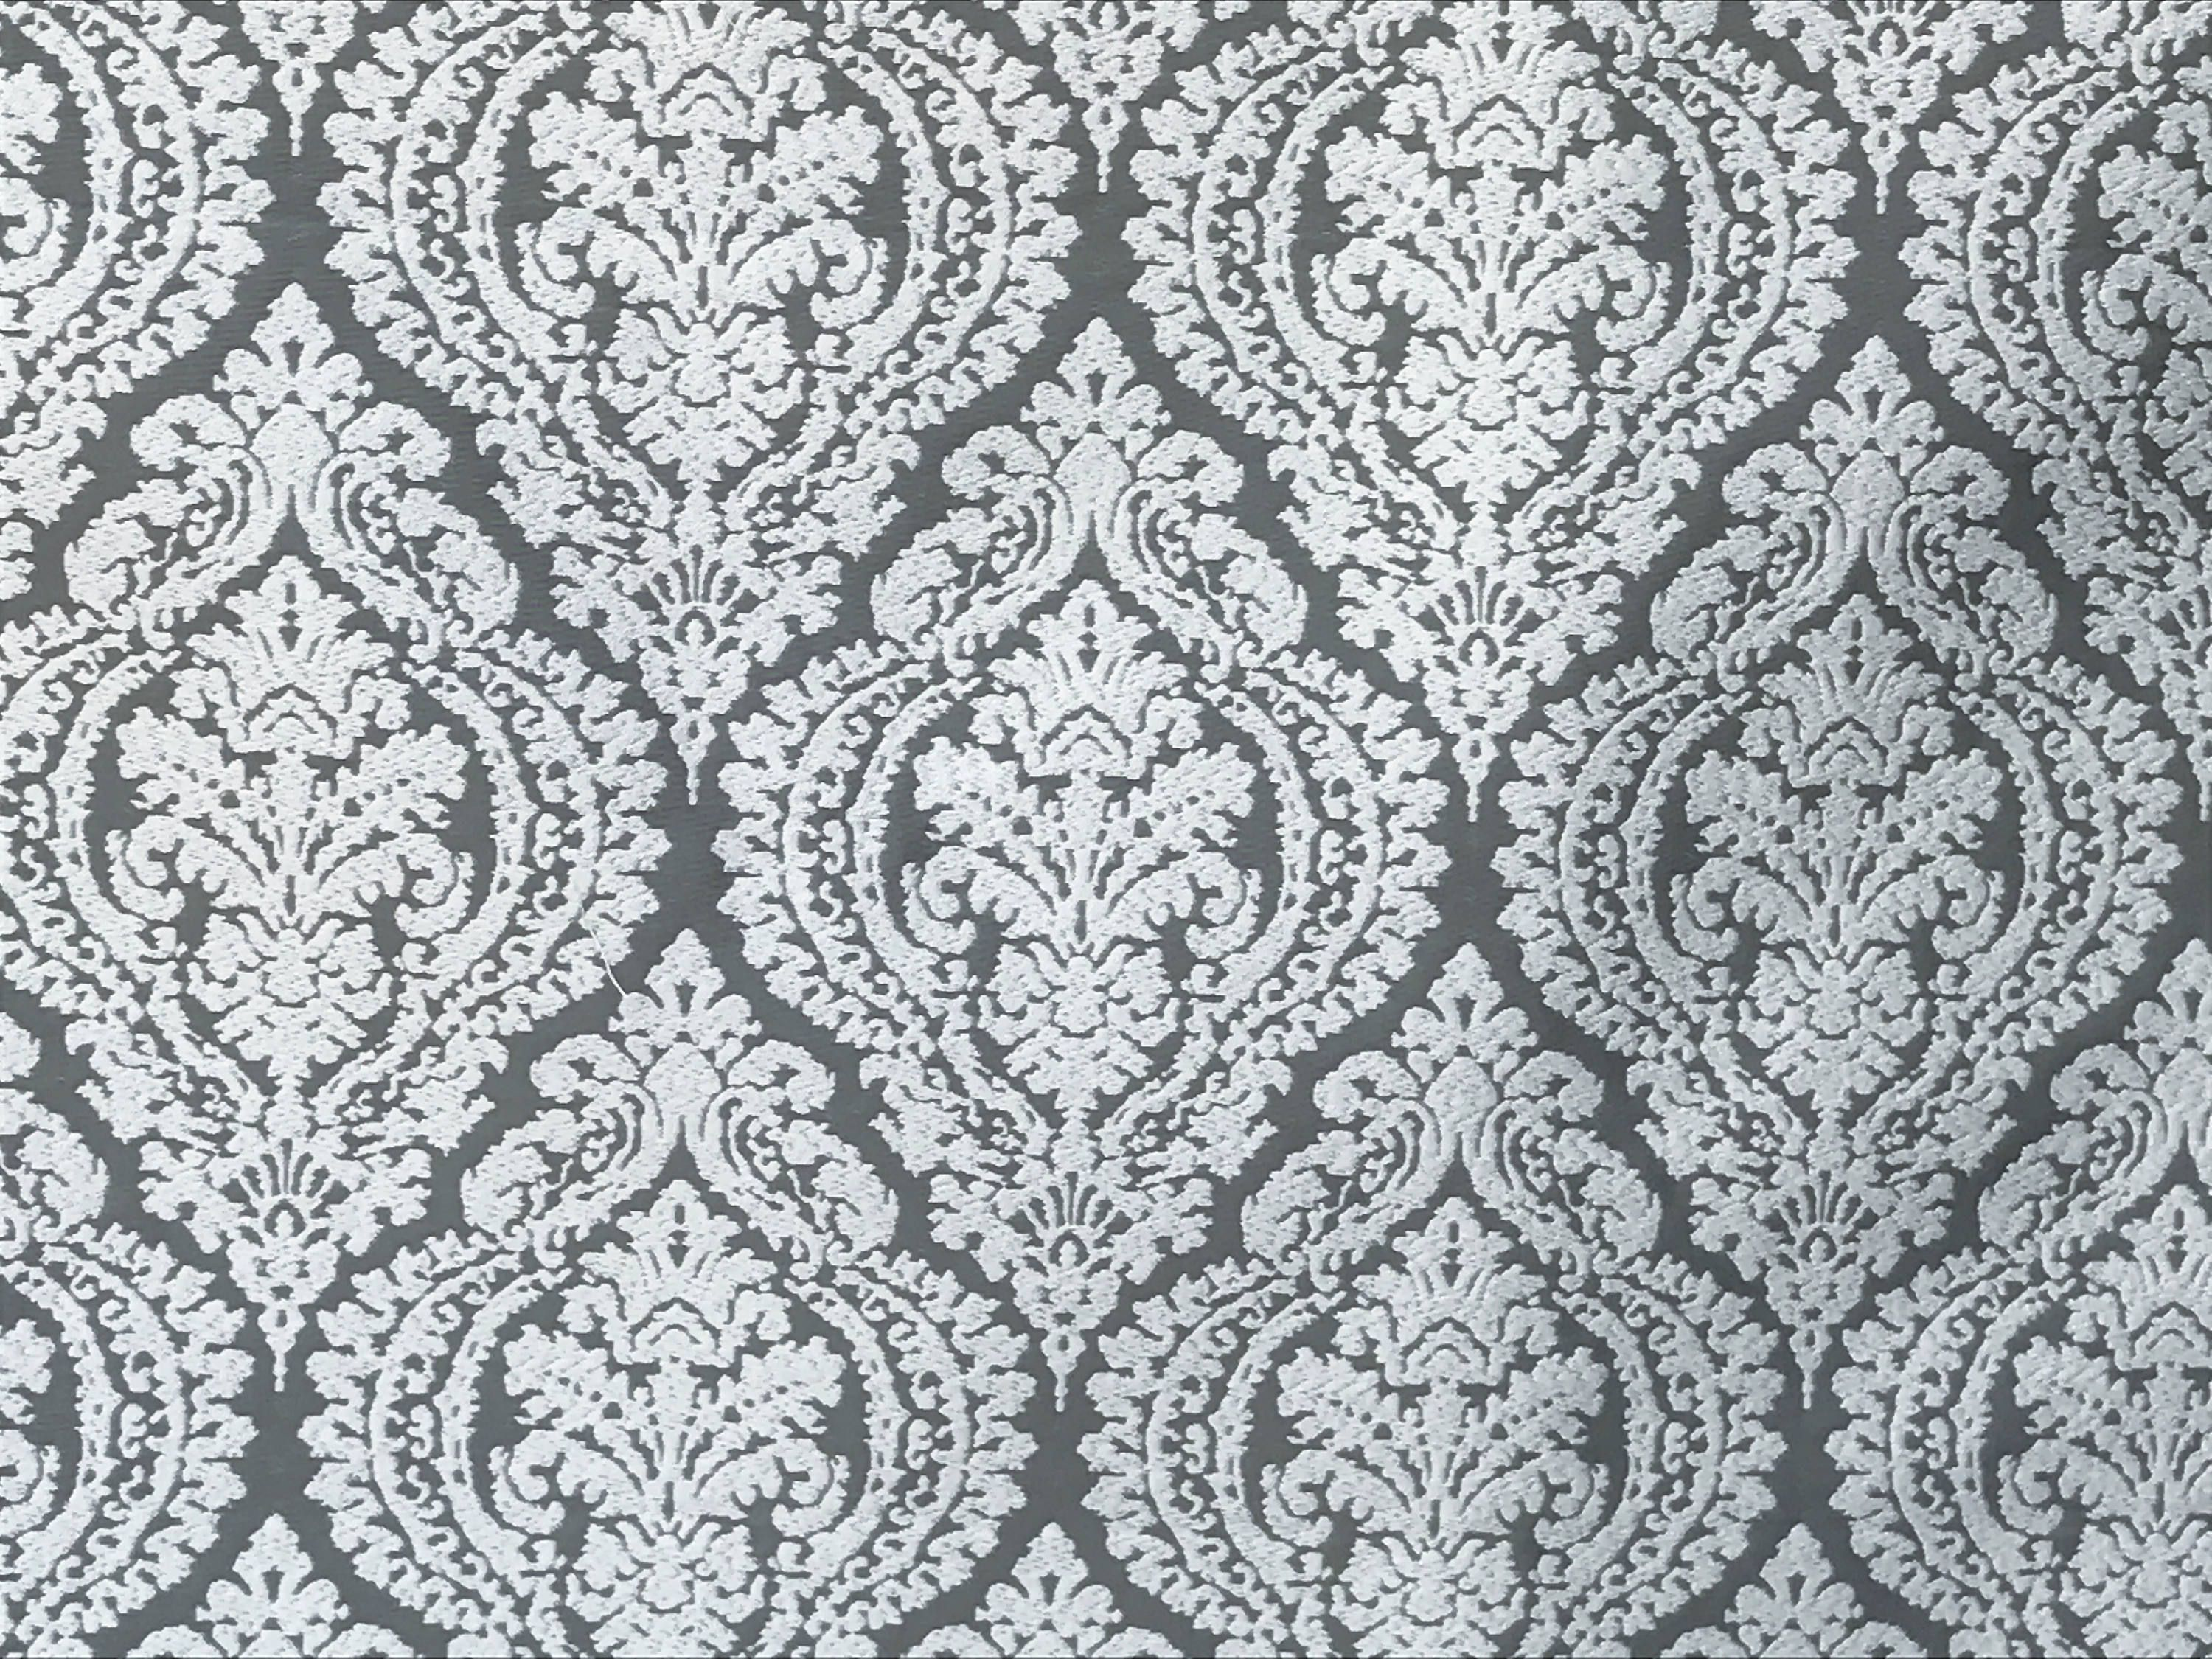 gray and white damask curtain fabric by the yard upholstery fabric wholesale drapery fabric. Black Bedroom Furniture Sets. Home Design Ideas